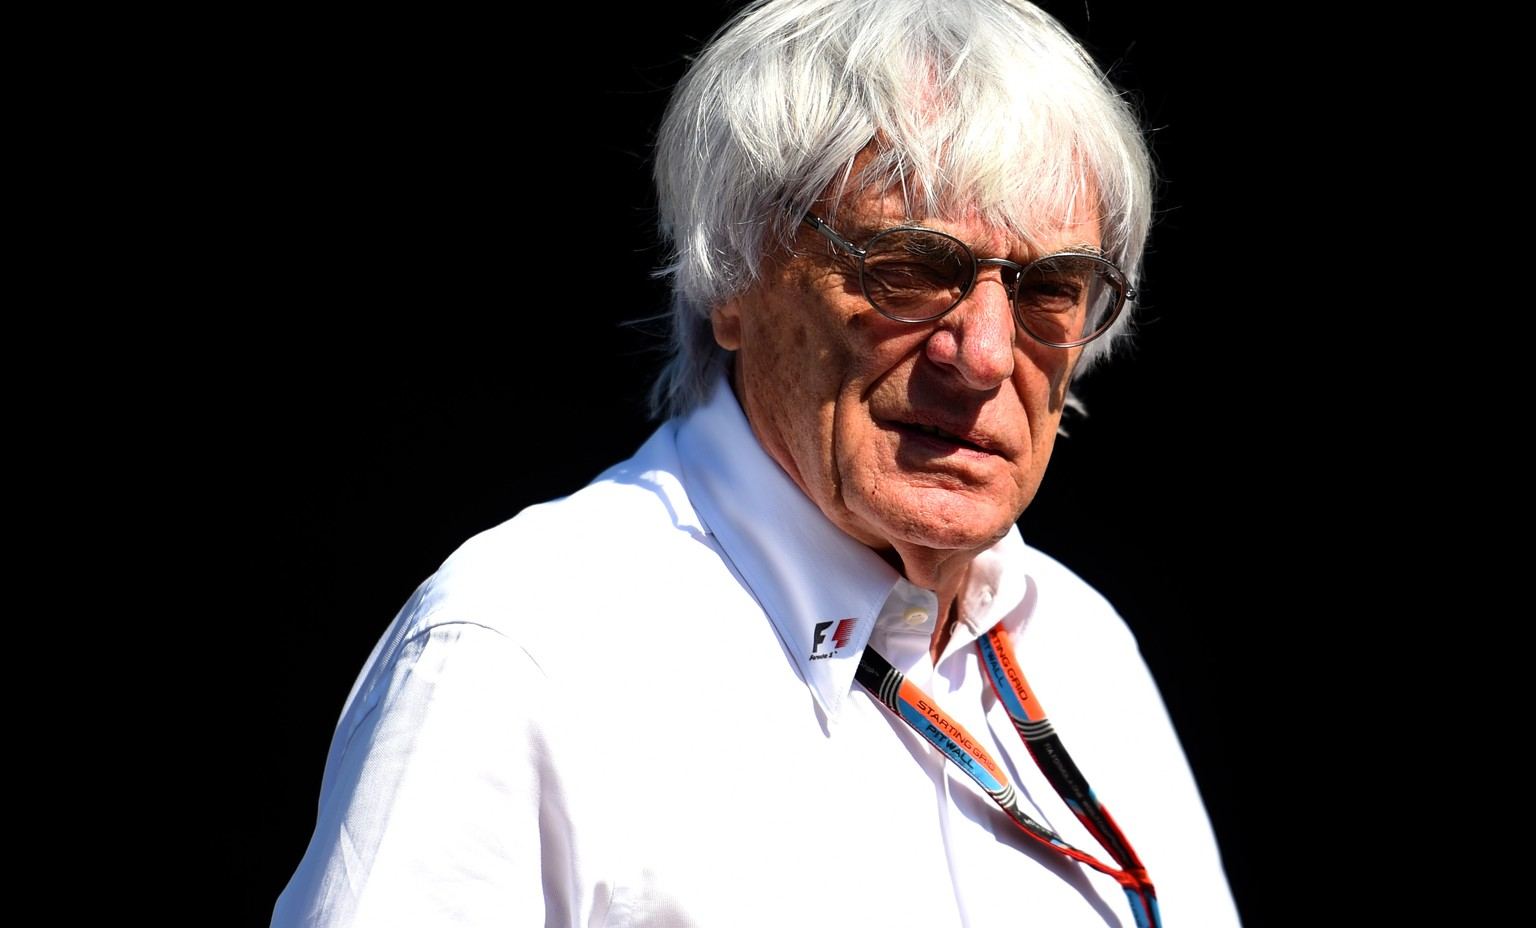 SPA, BELGIUM - AUGUST 22:  F1 supremo Bernie Ecclestone looks on in the paddock during qualifying for the Formula One Grand Prix of Belgium at Circuit de Spa-Francorchamps on August 22, 2015 in Spa, Belgium.  (Photo by Lars Baron/Getty Images)